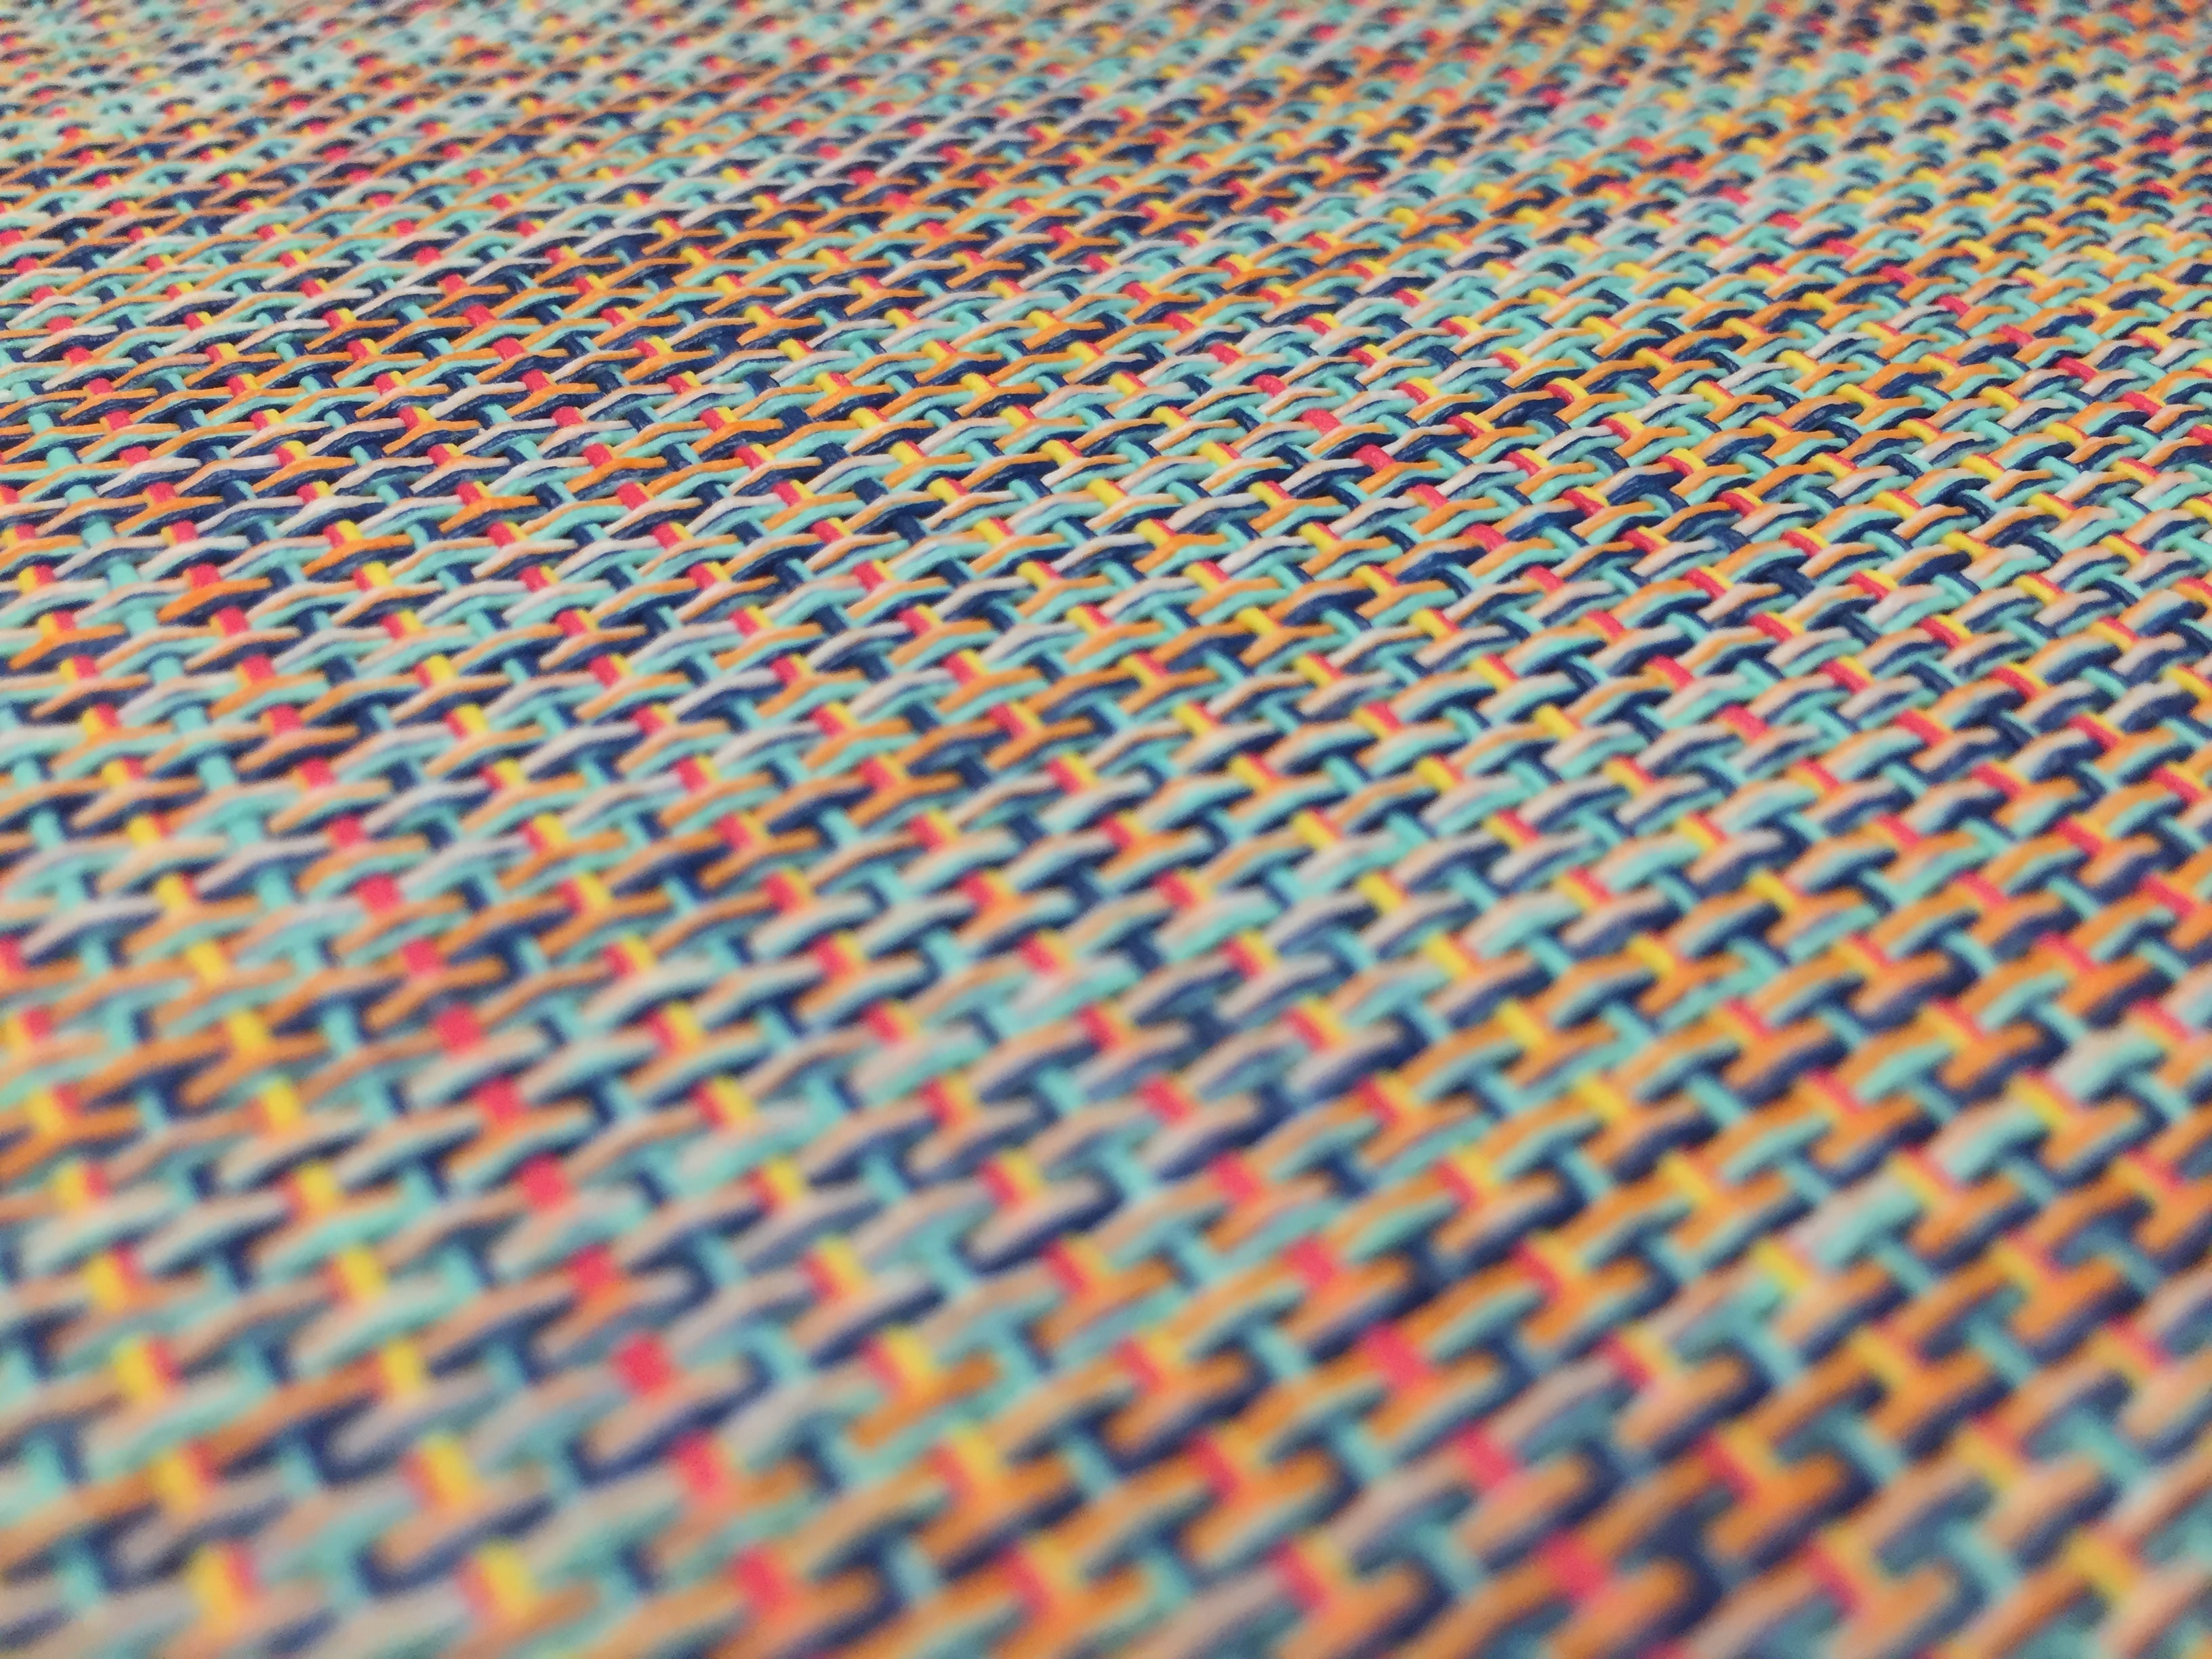 close-up photo of multicolored textile